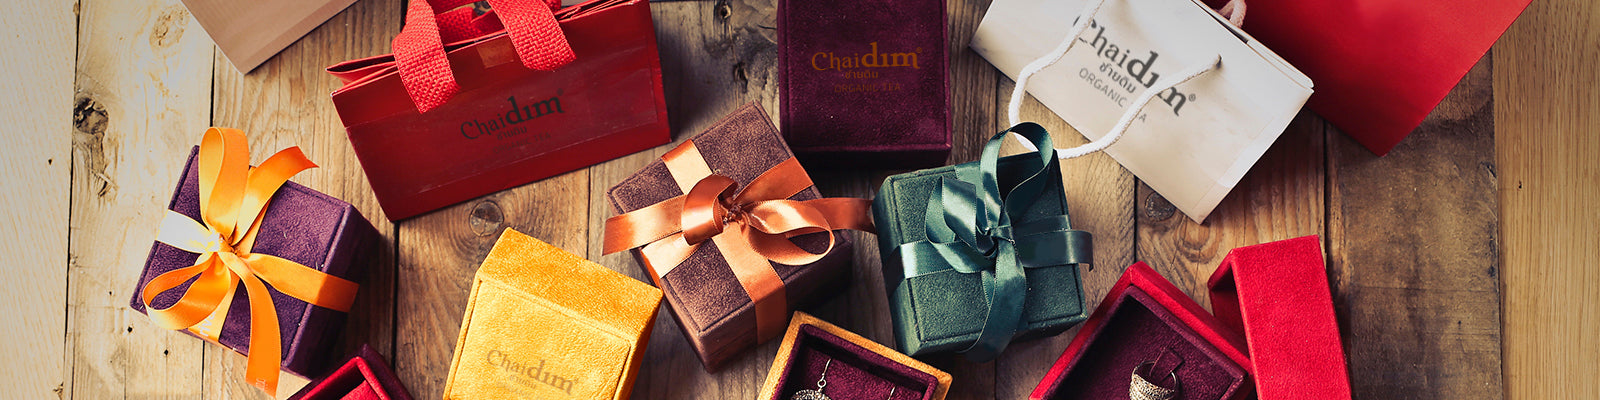 Chaidim Organic Tea Corporate Gift